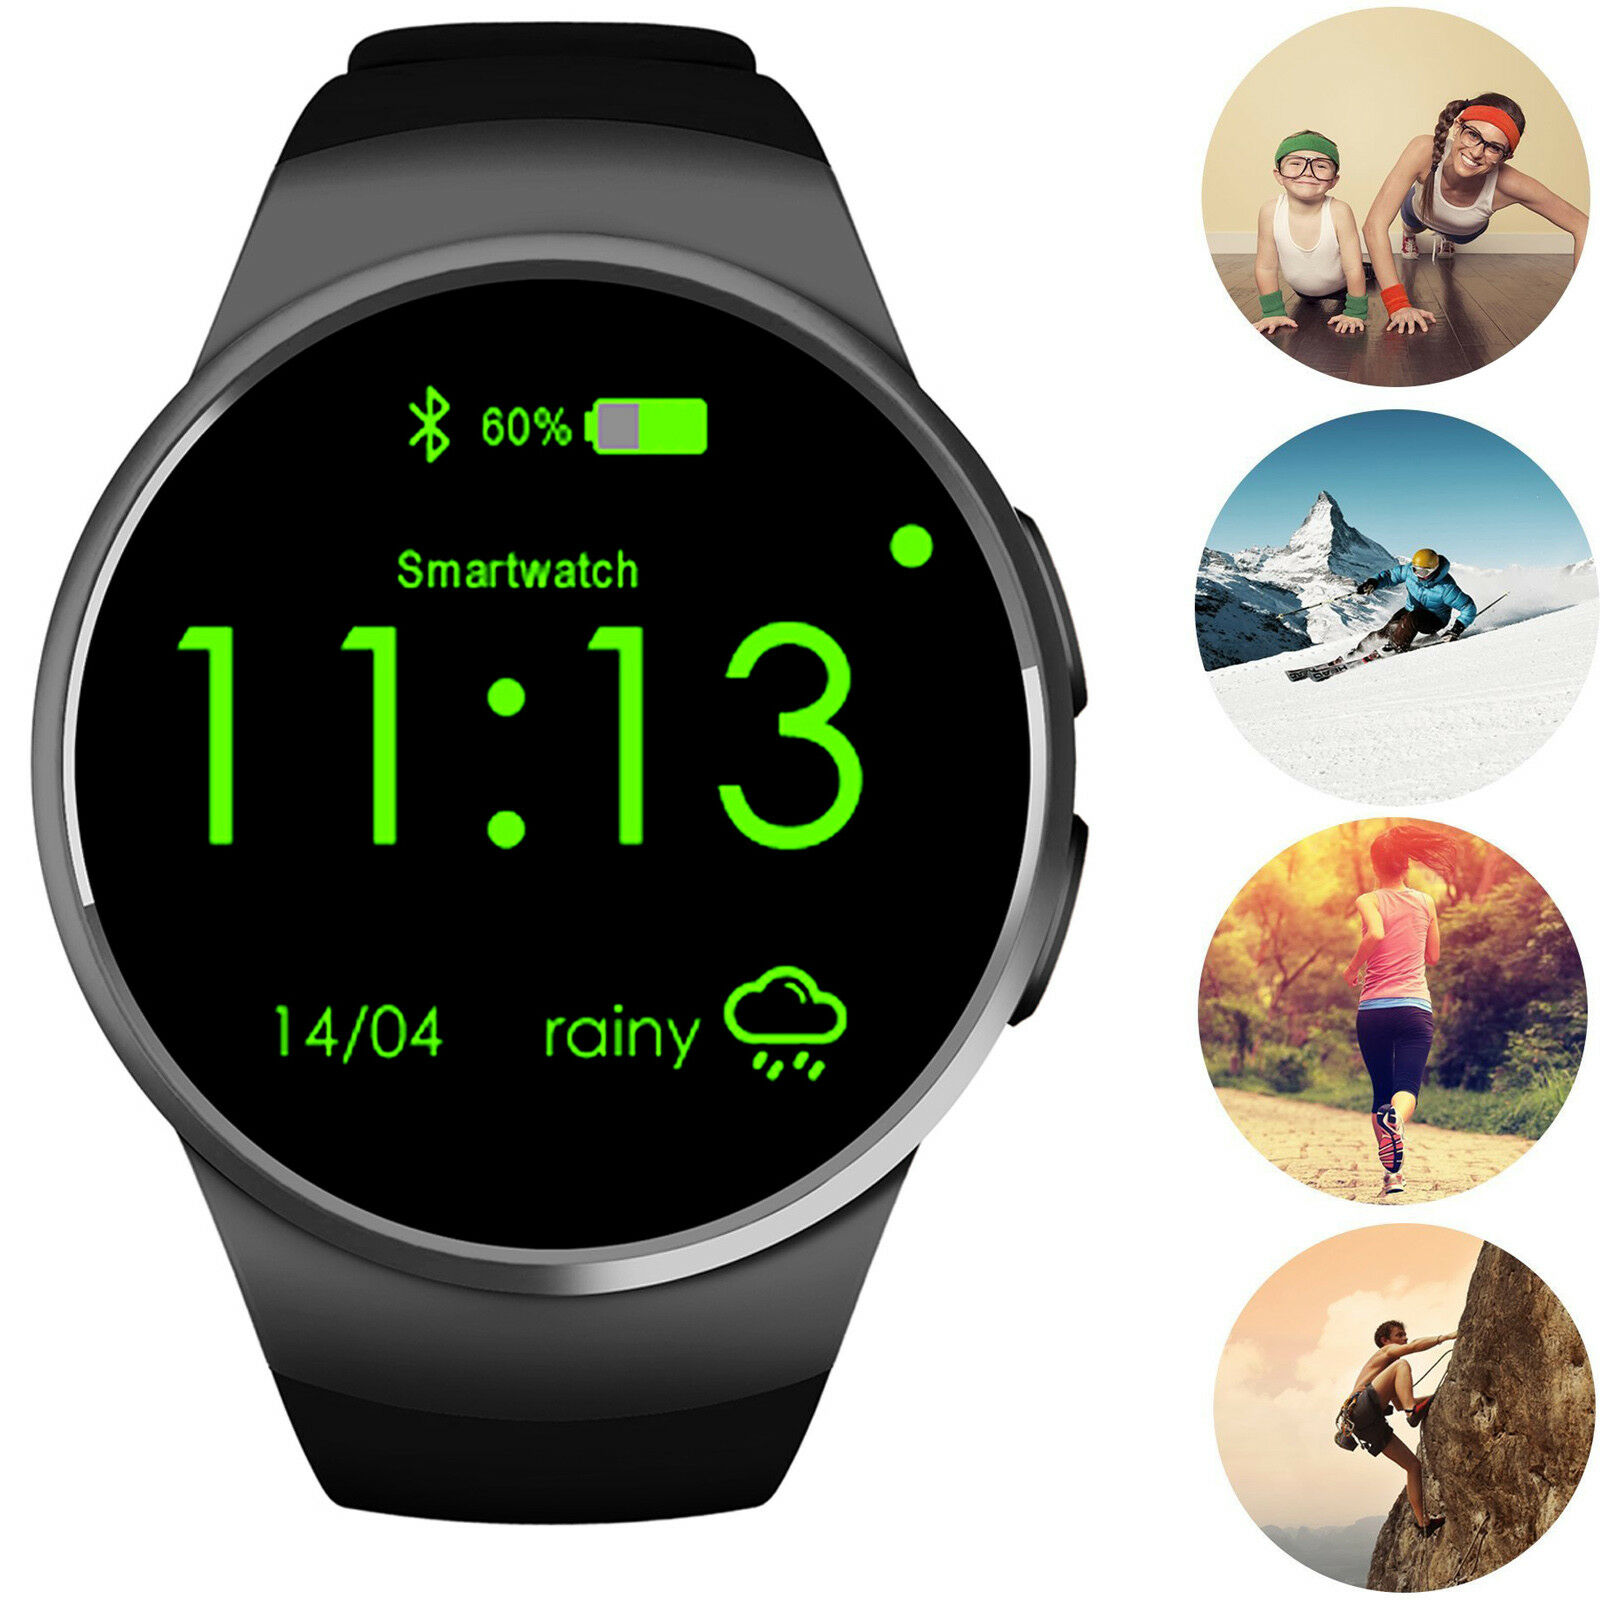 94ed95140 Details about Lady Women Bluetooth Wrist Smart Watch For ASUS Samsung  Galaxy S7 S6 S5 J1 Mini